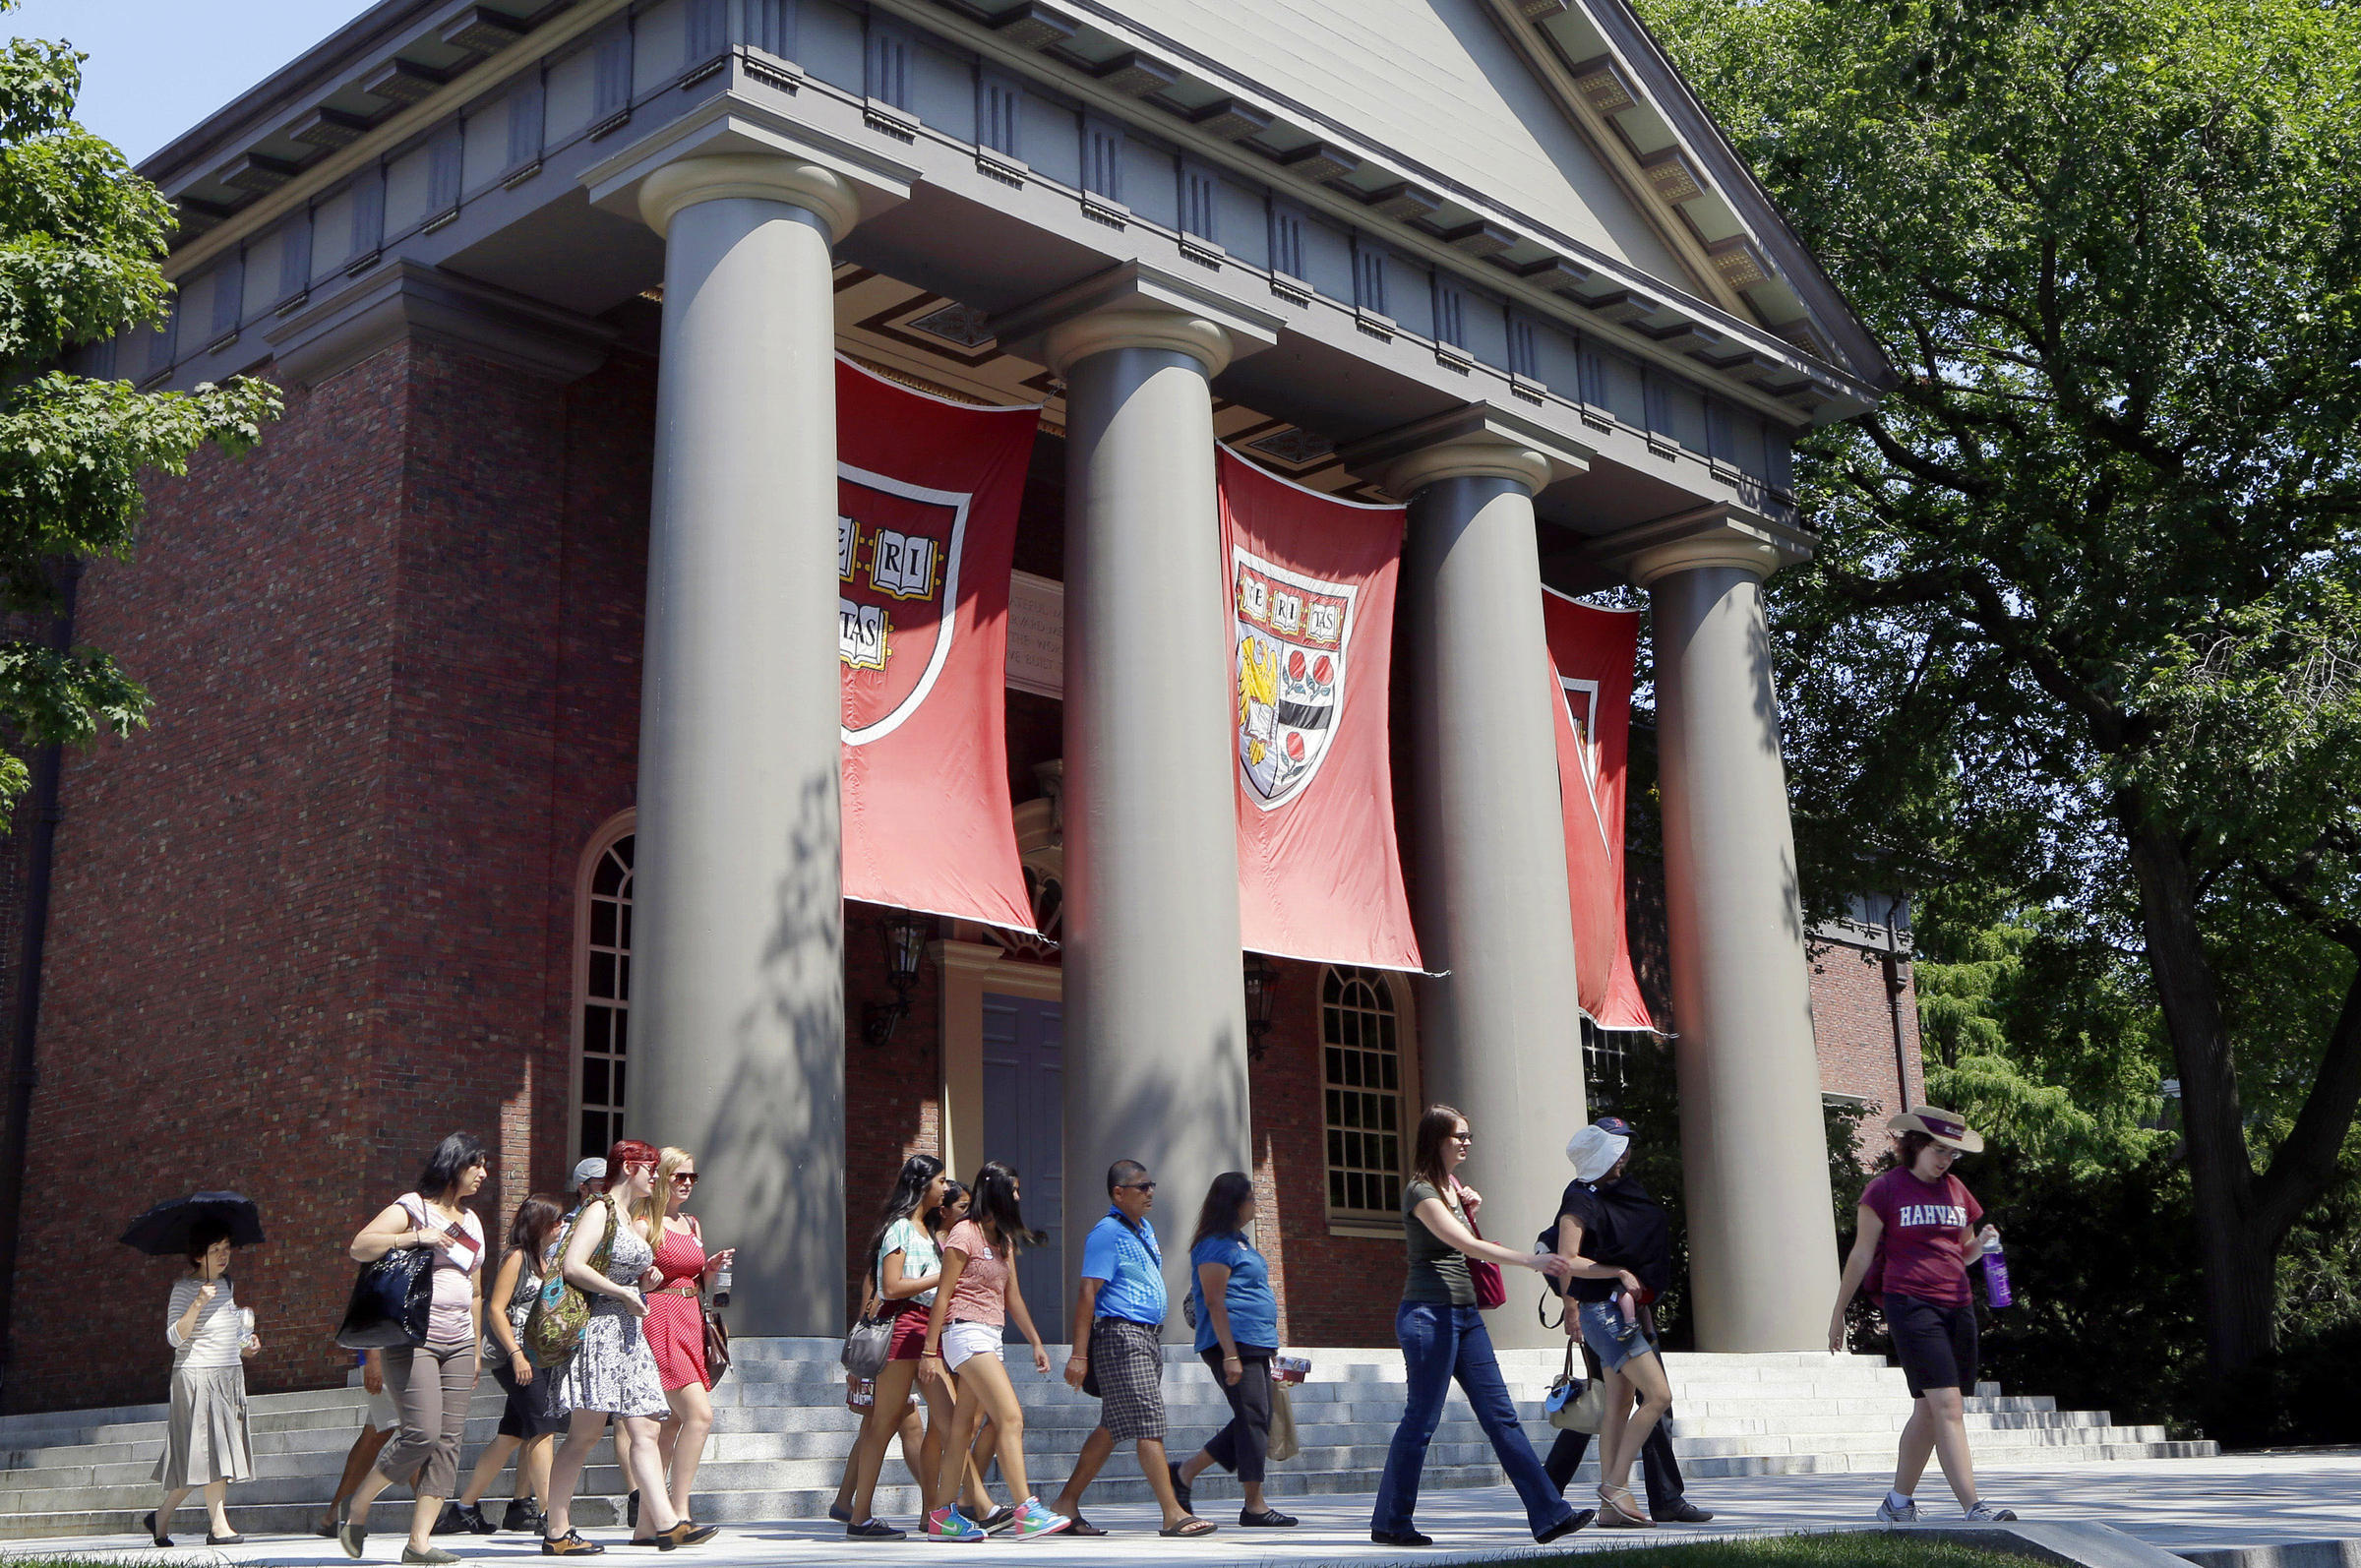 A tour group in 2012 walks through the campus of Harvard University in Cambridge Mass